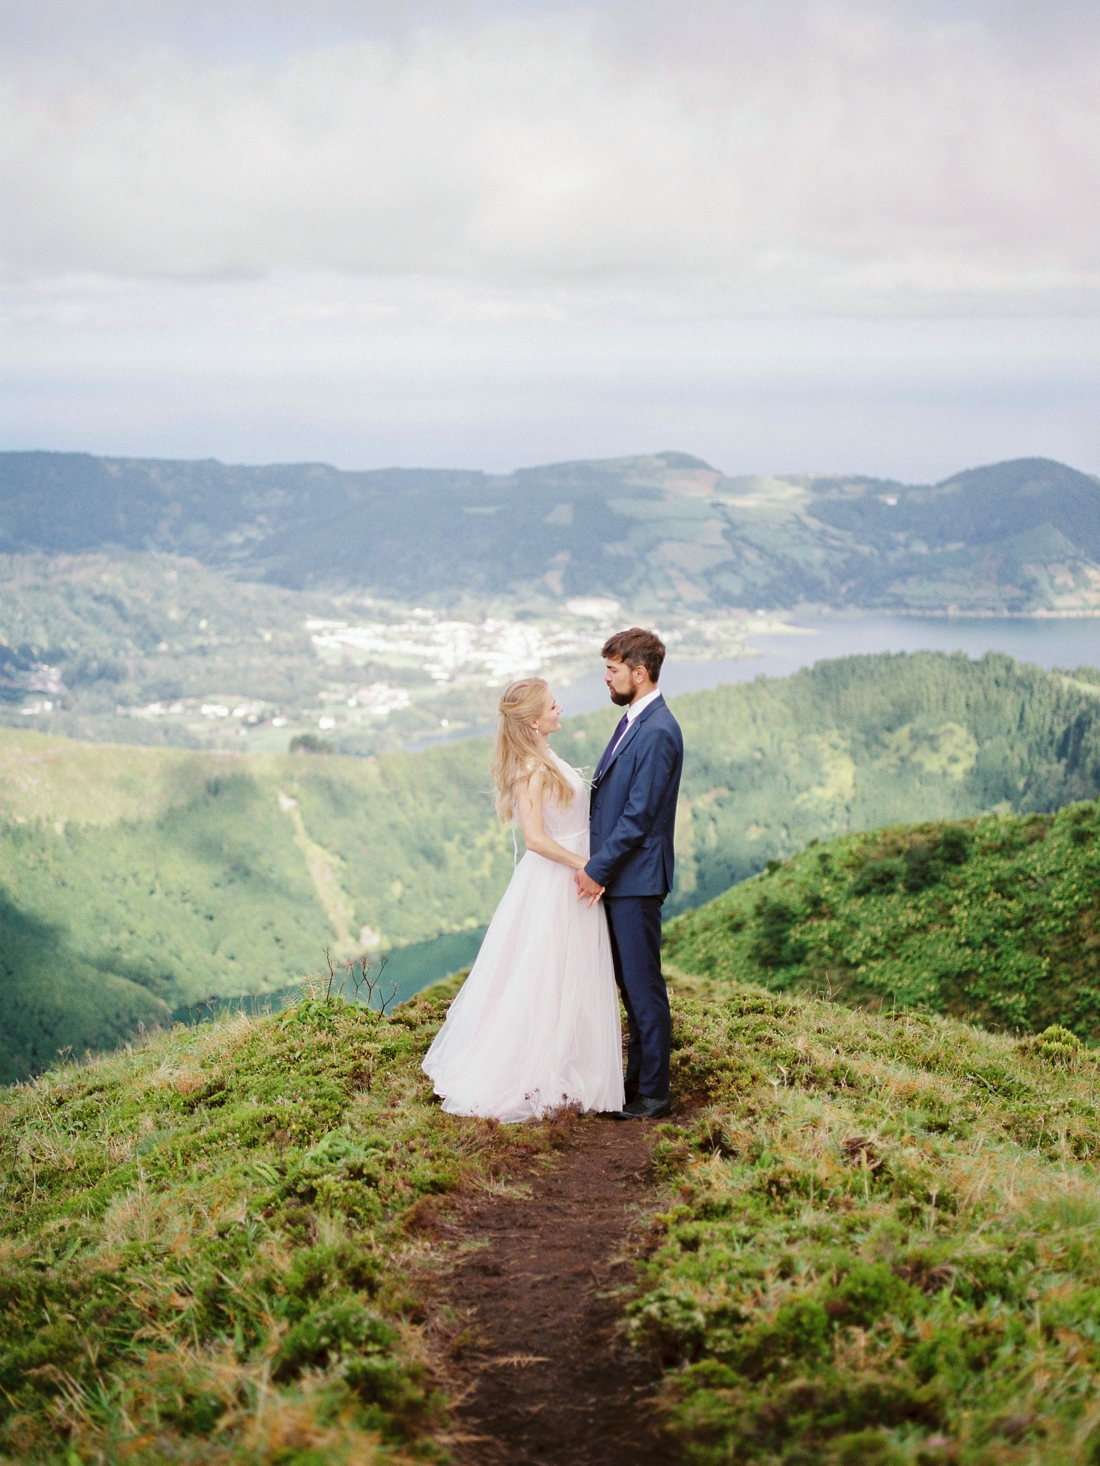 Honeymoon Session in the Azores